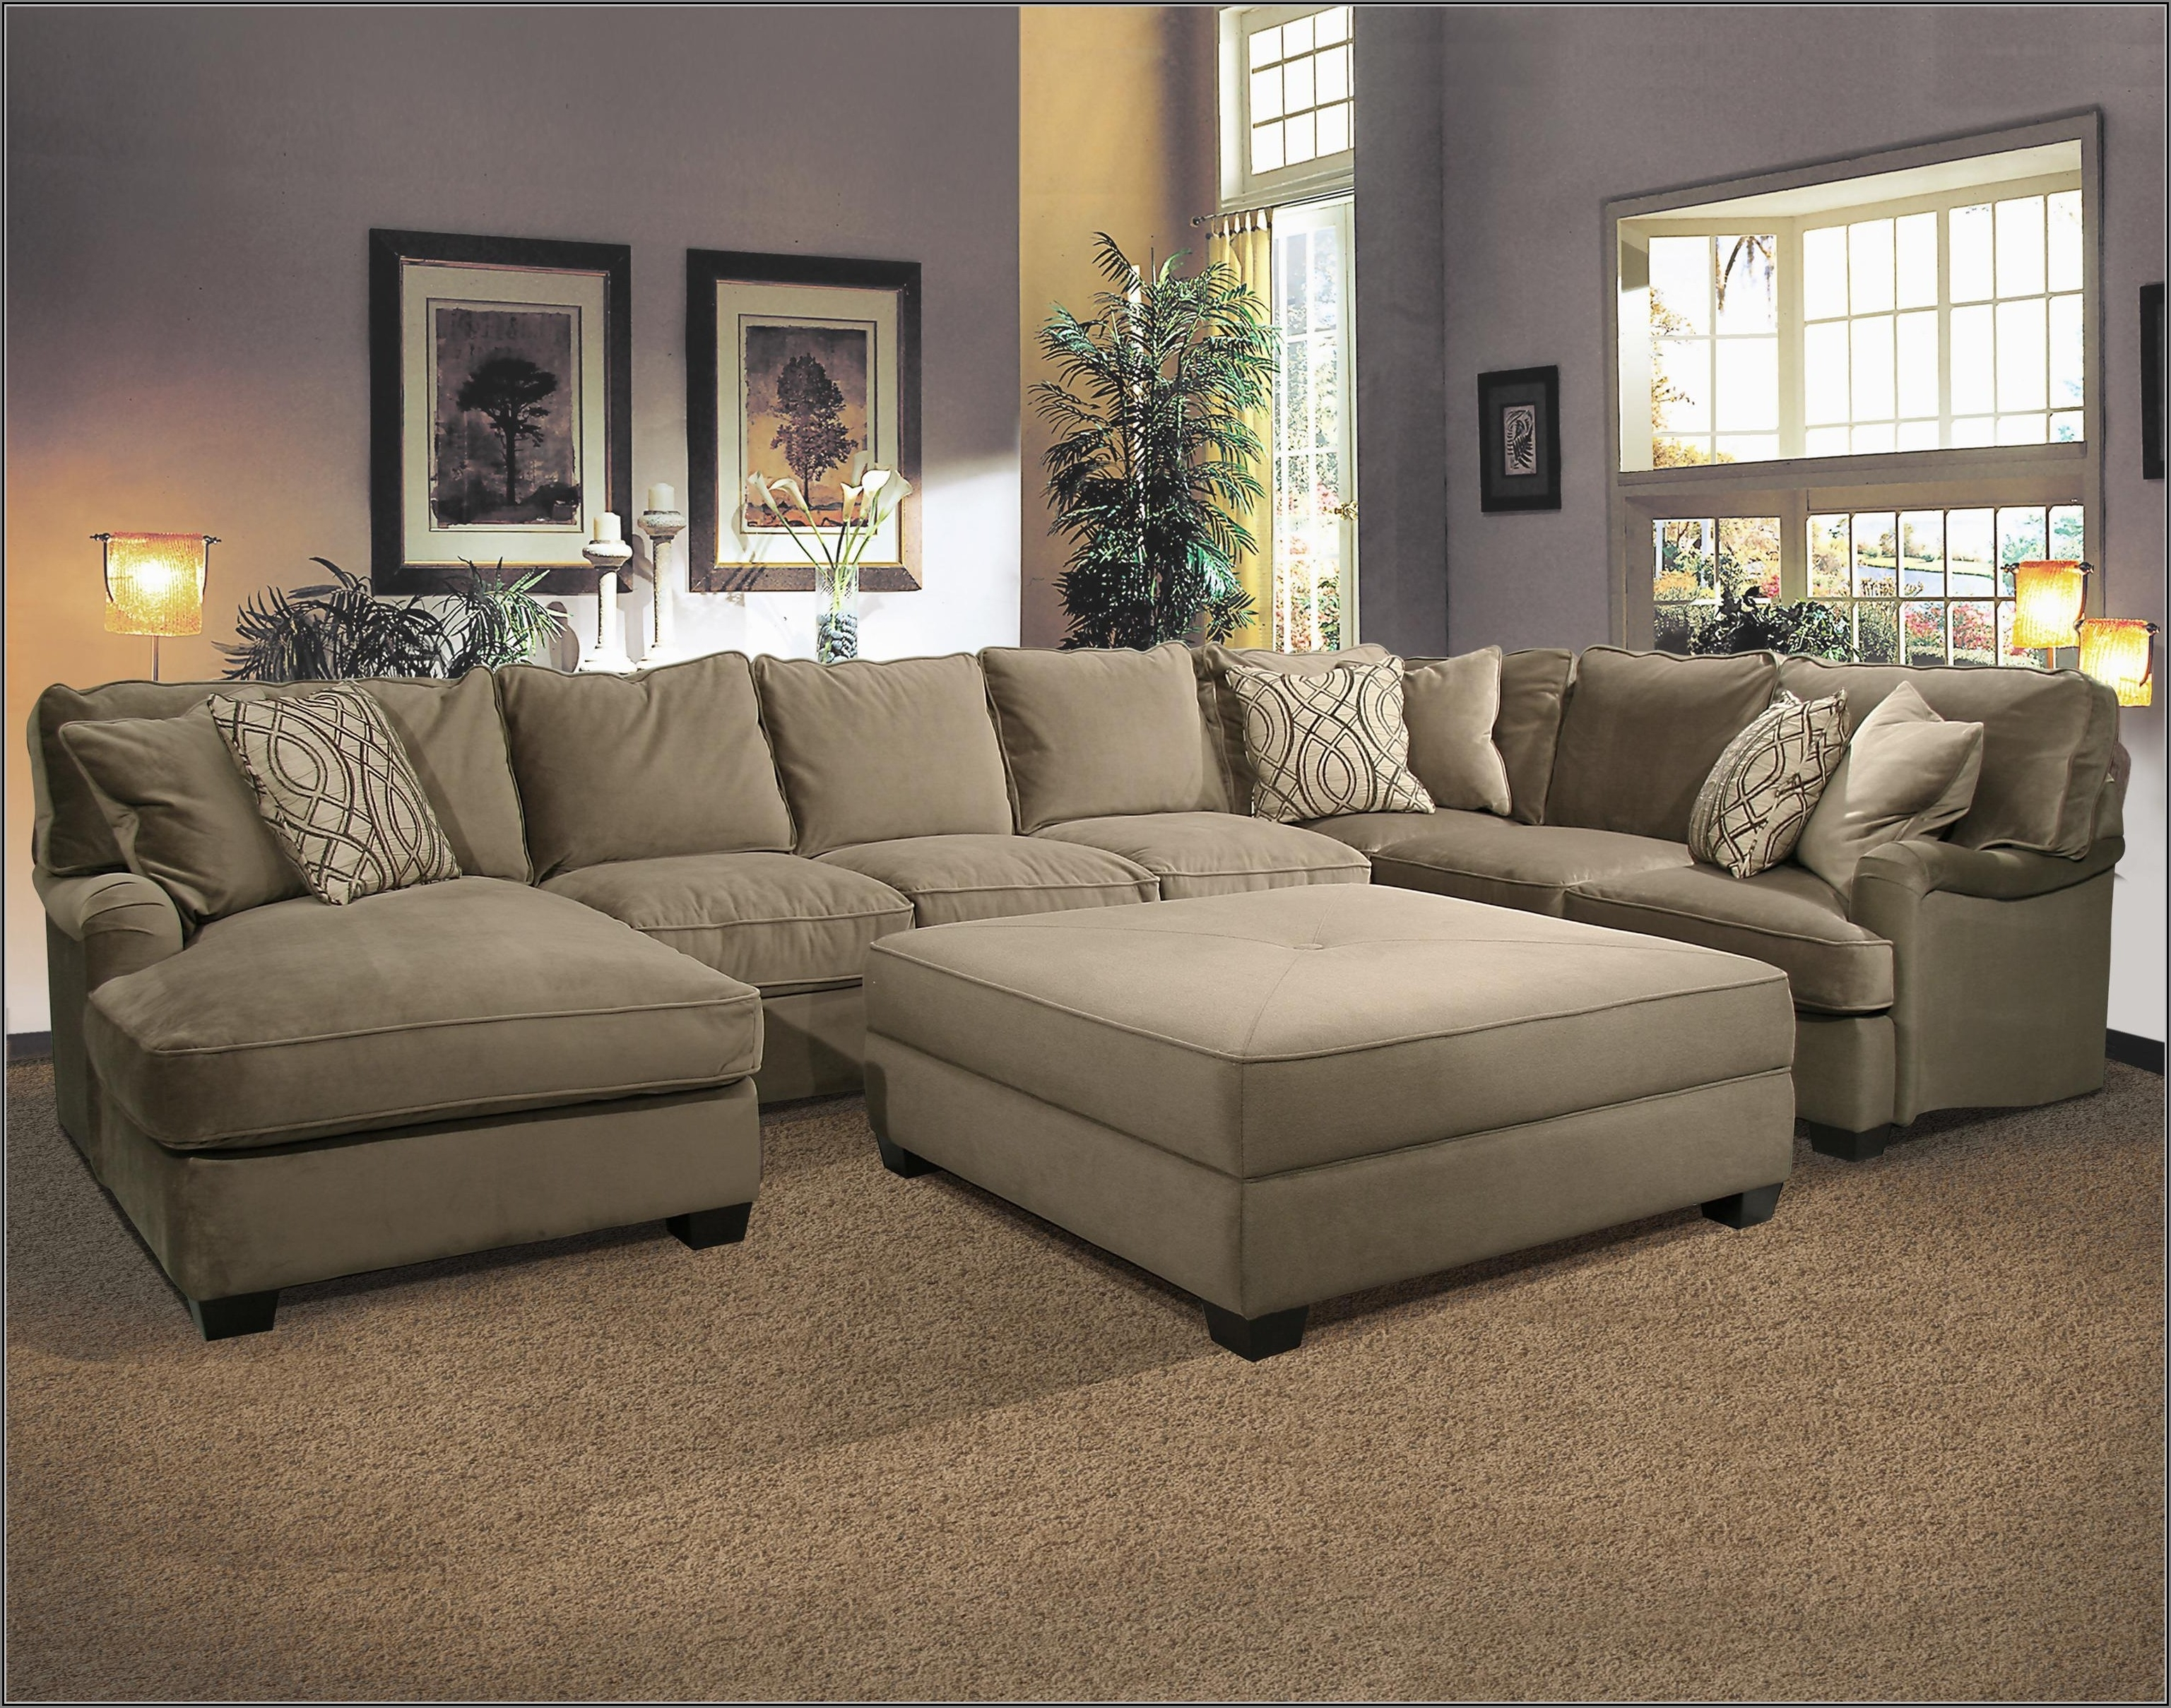 Couches With Large Ottoman Inside Latest Sectional Sofa With Large Ottoman Hotelsbacau Com Intended For (View 5 of 20)